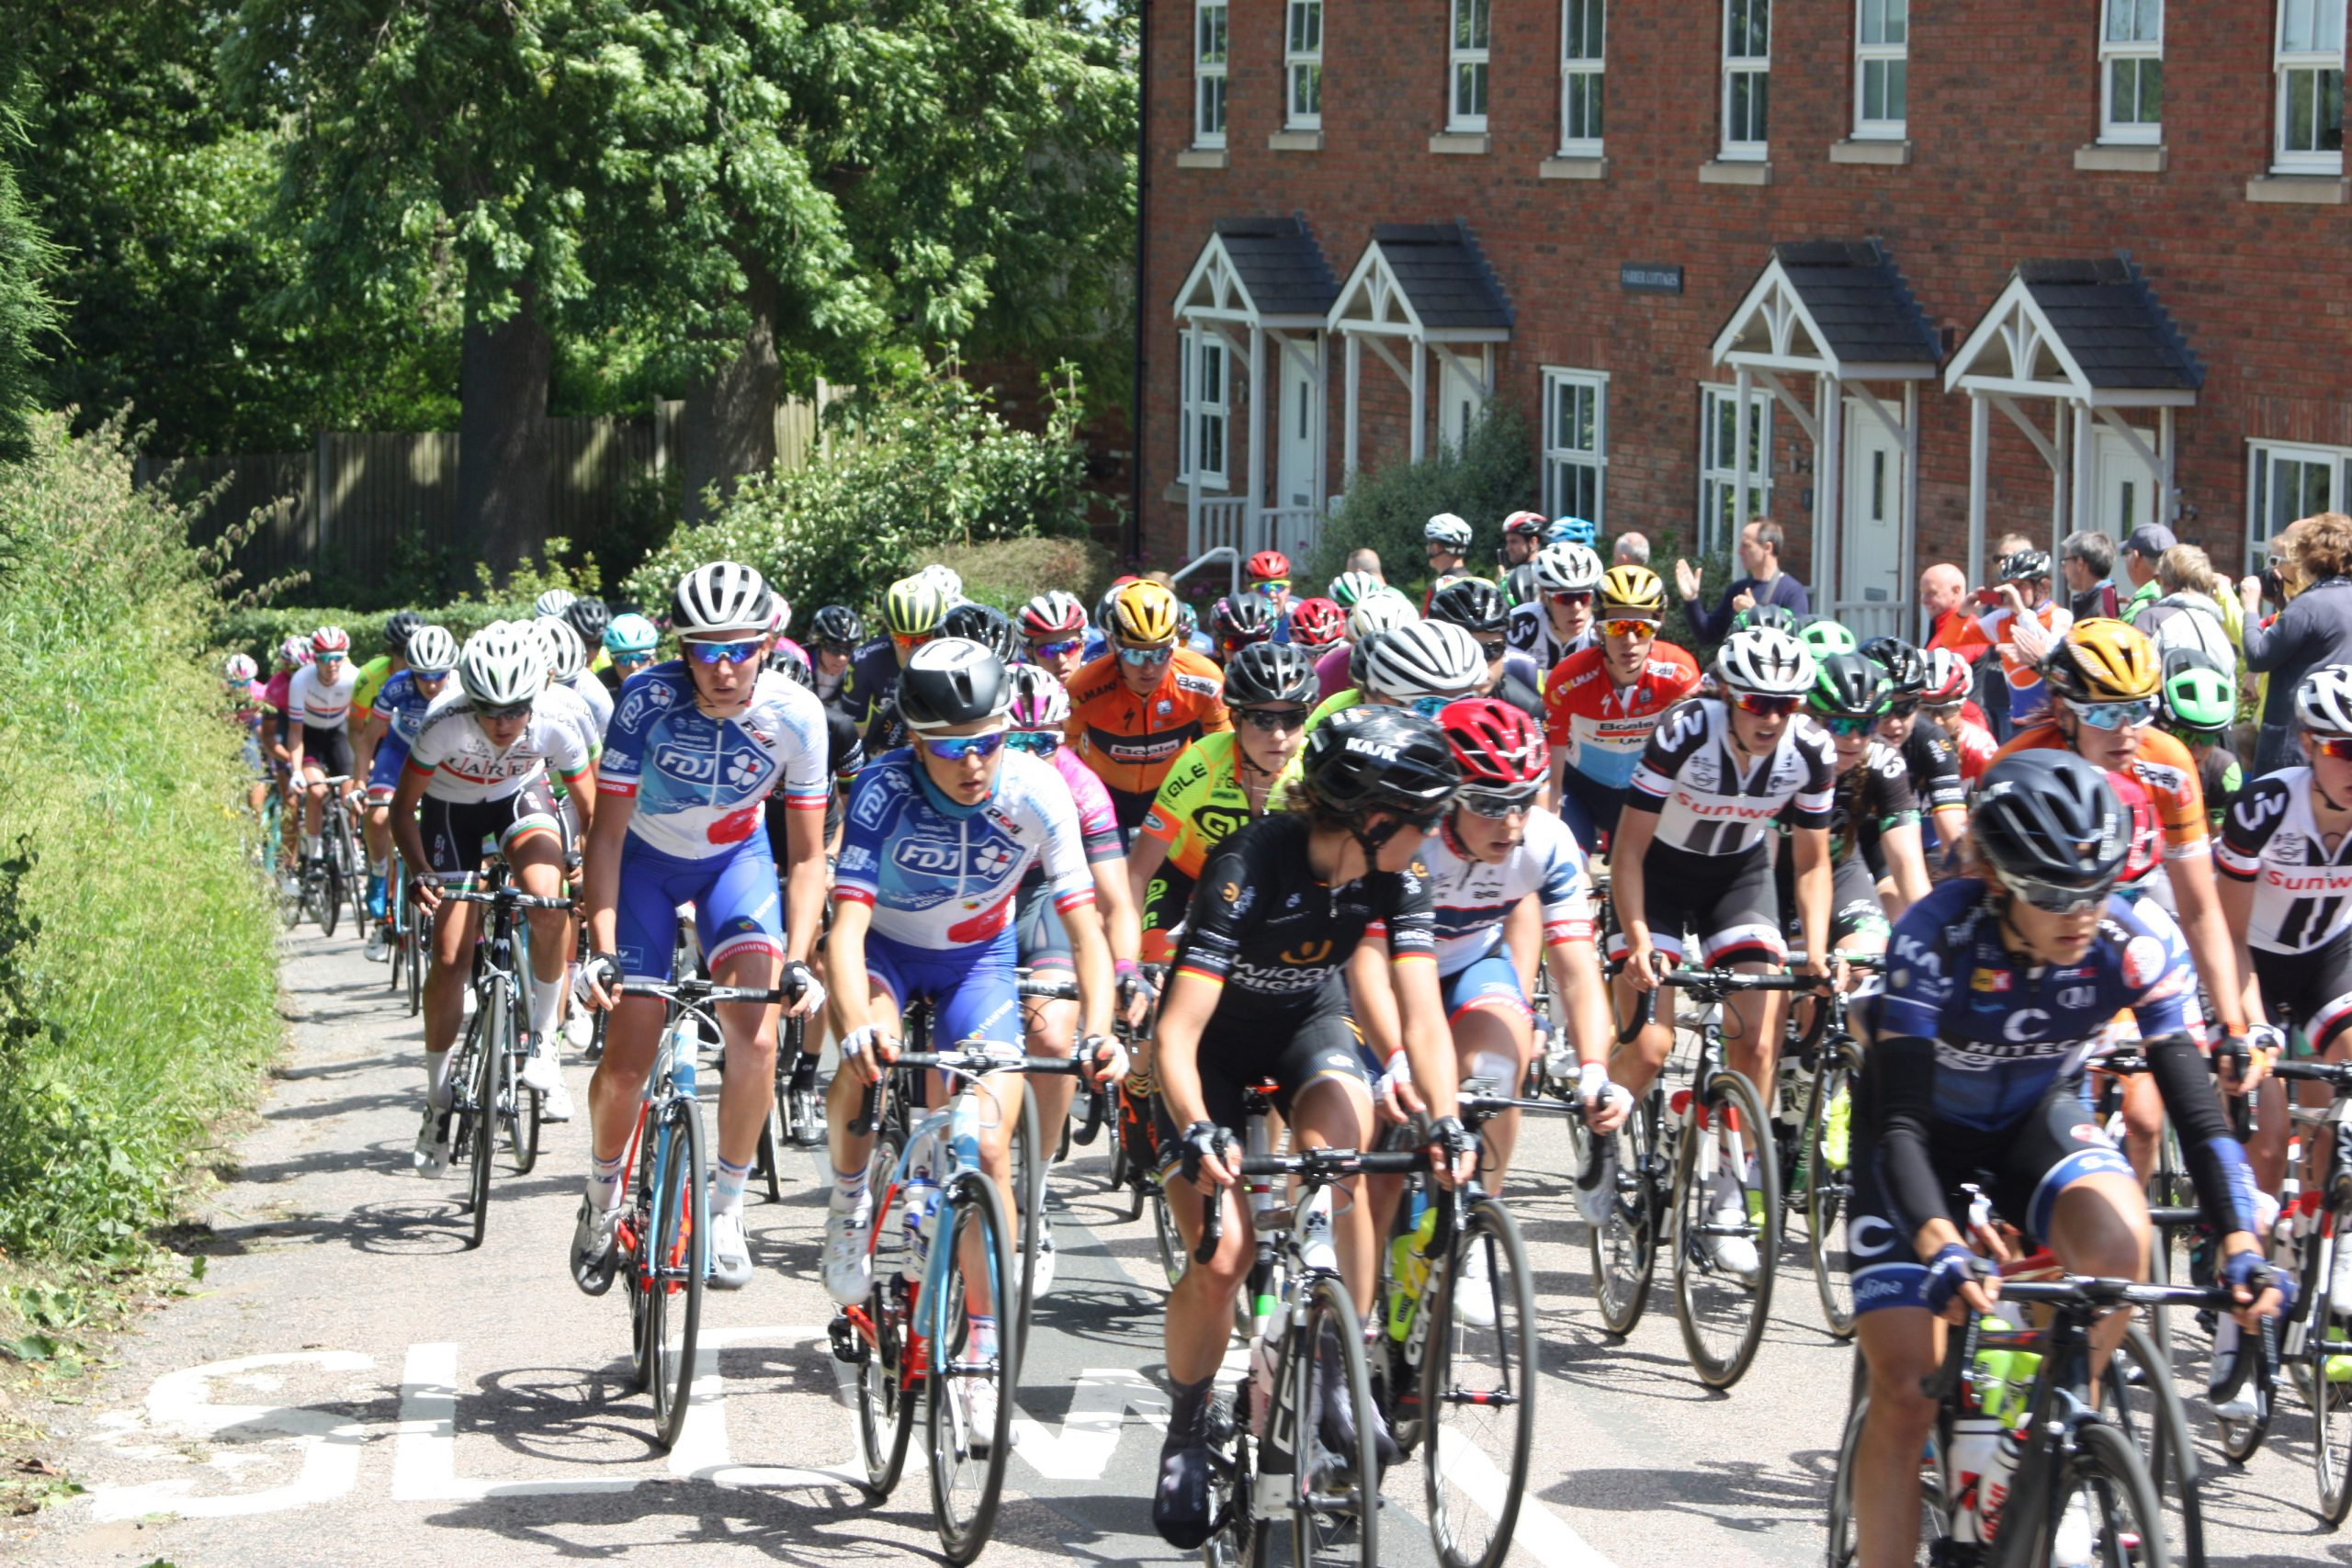 Womens Cycle Tour in East Farndon - June 2017